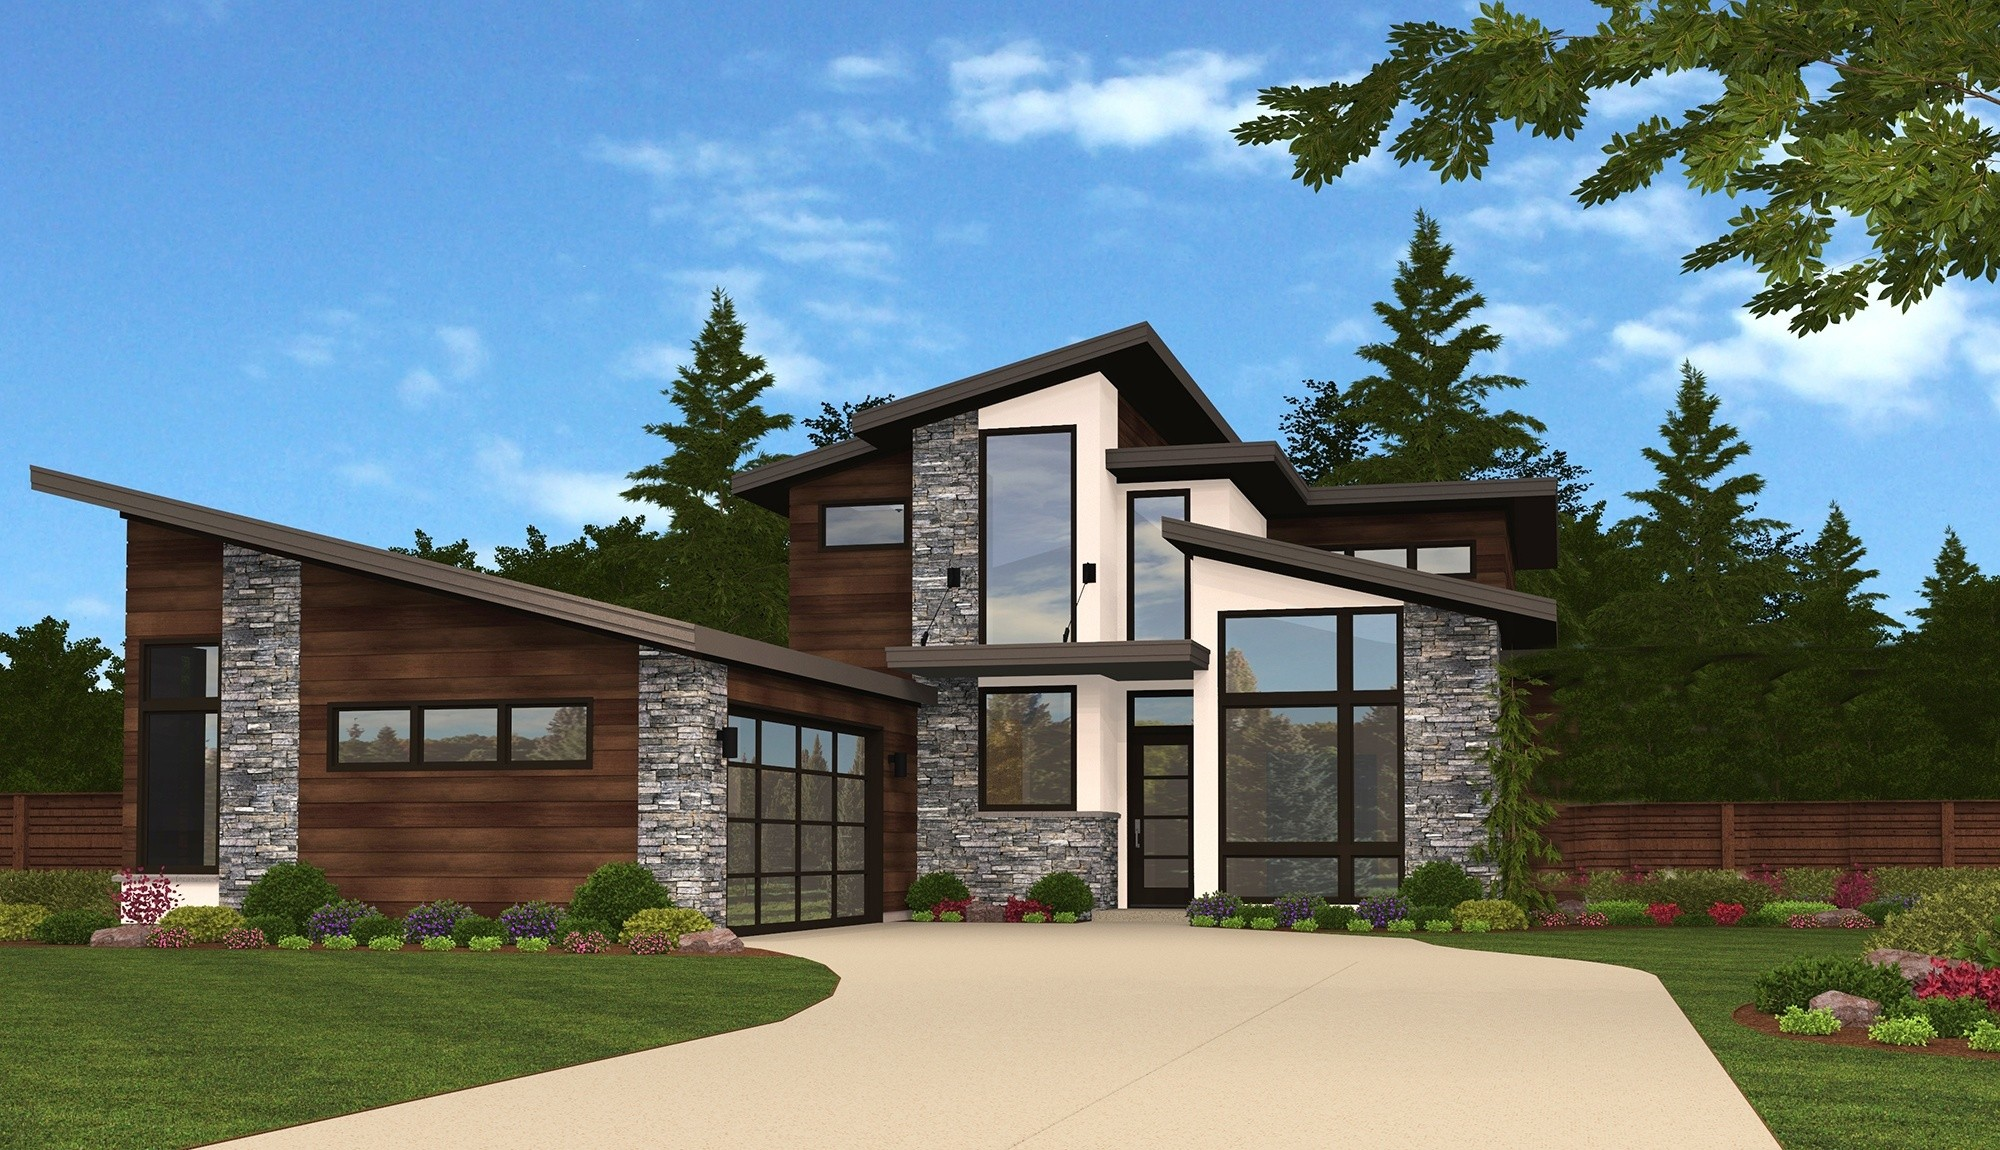 Modern Ridge House Plan Light Filled Modern Home Design